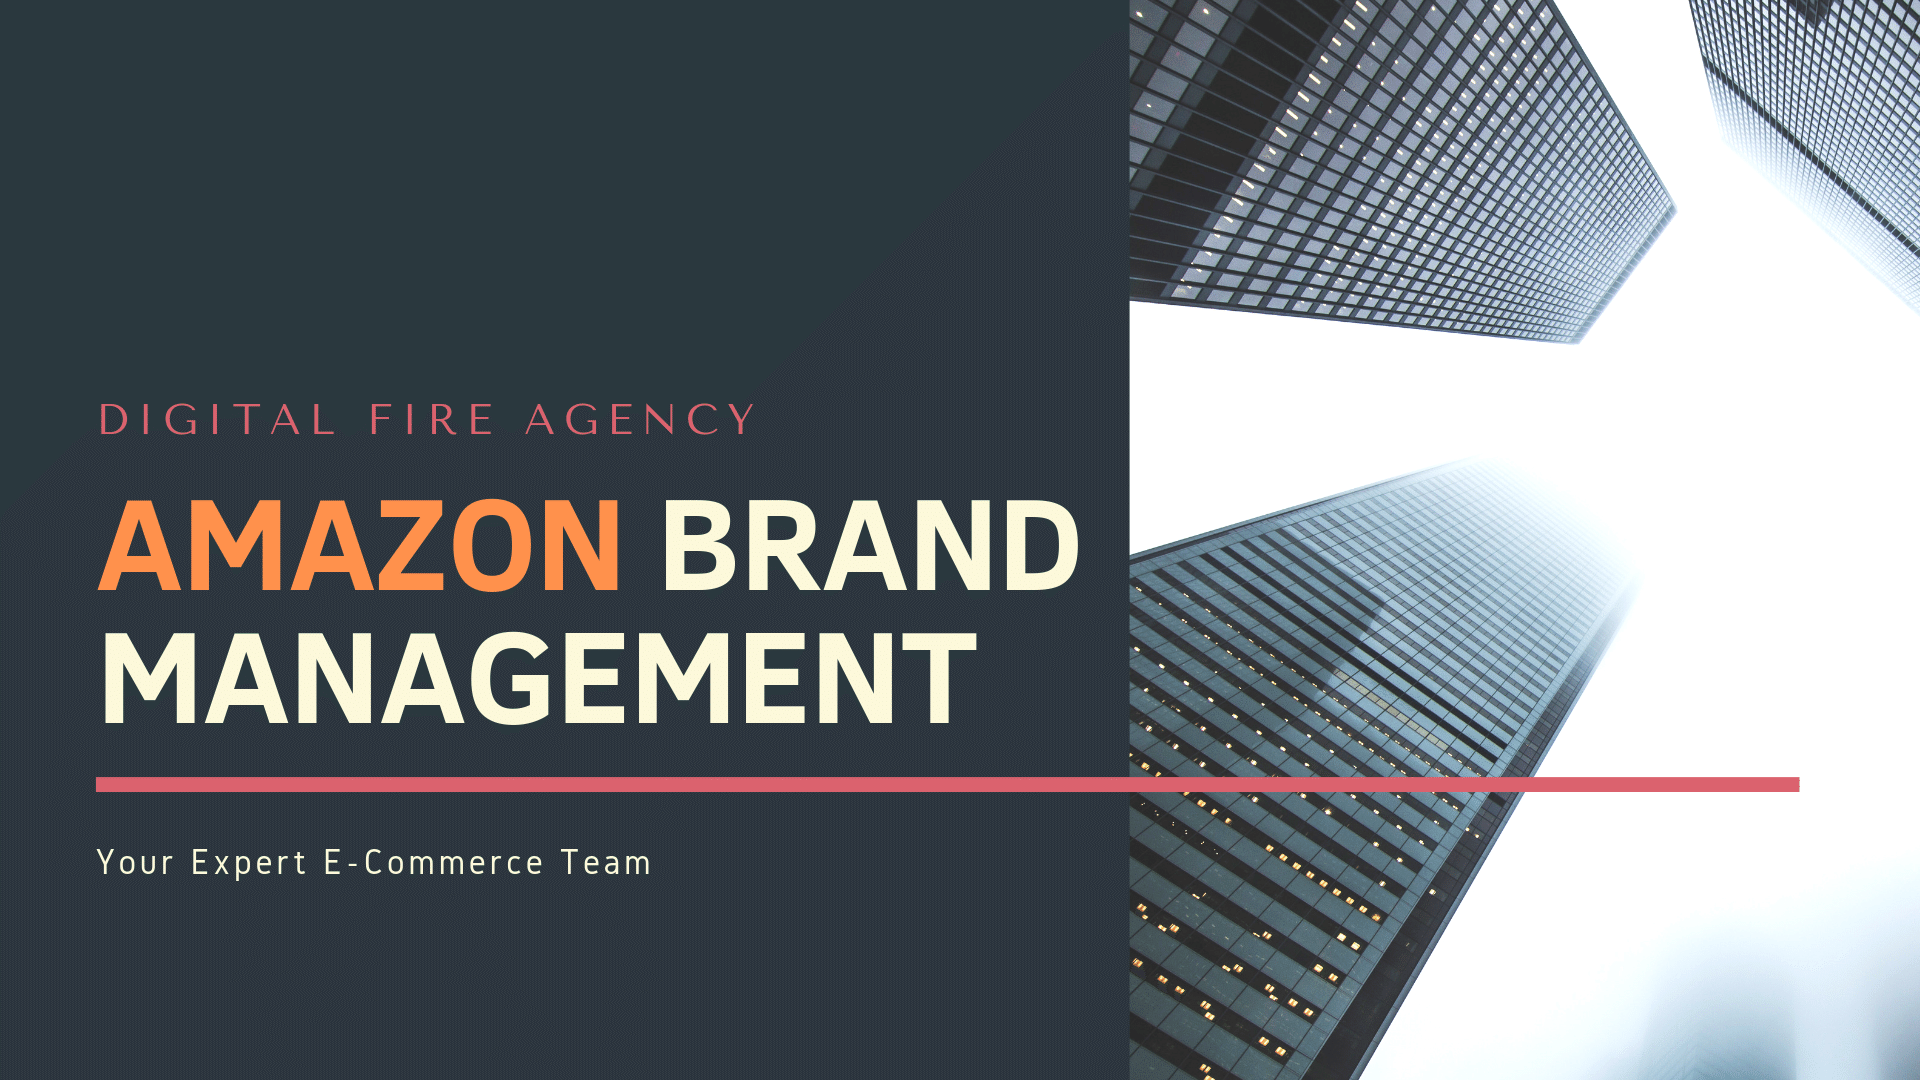 Digital Fire Agency Amazon Brand Management Services